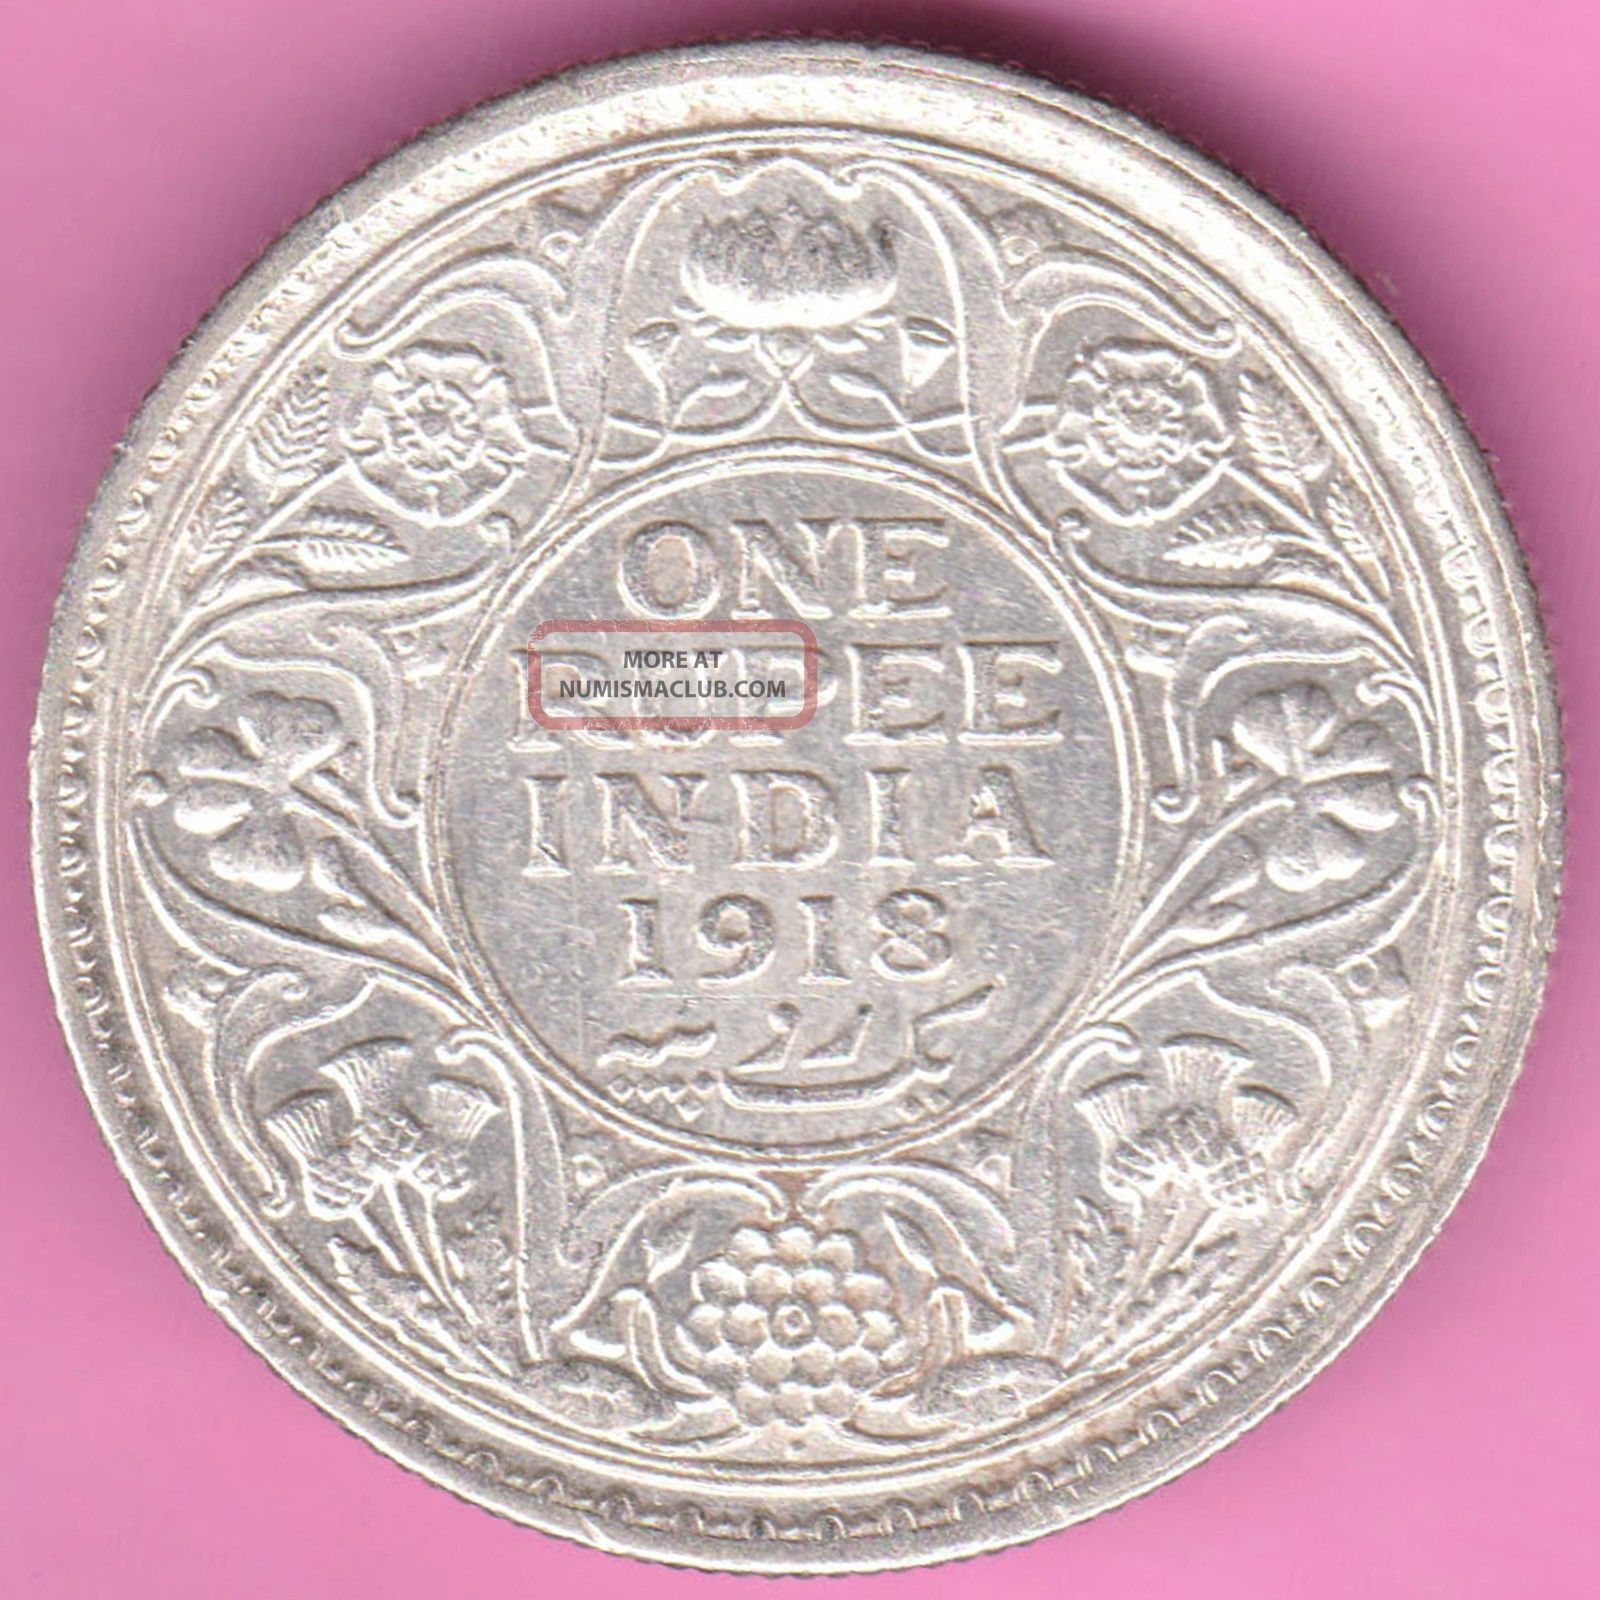 British India - 1918 - King George V - One Rupee - Rarest Silver Coin - 17 British photo